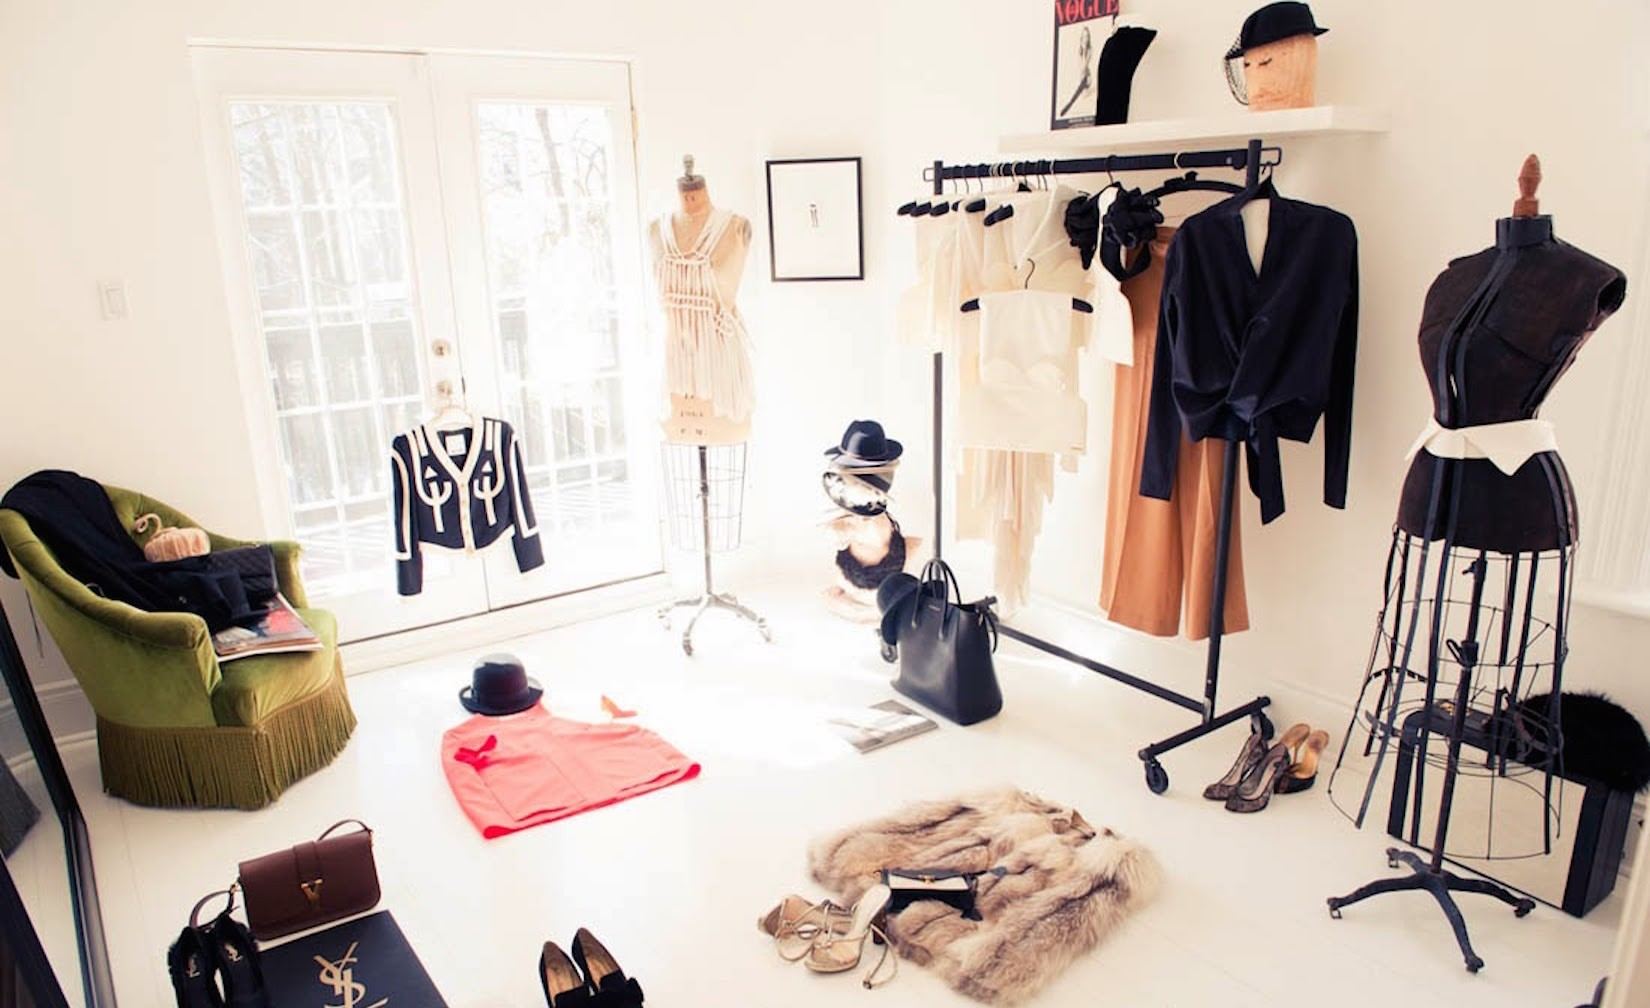 vicki-archer-shop-in-the-closet-the-coveteur-1.jpg